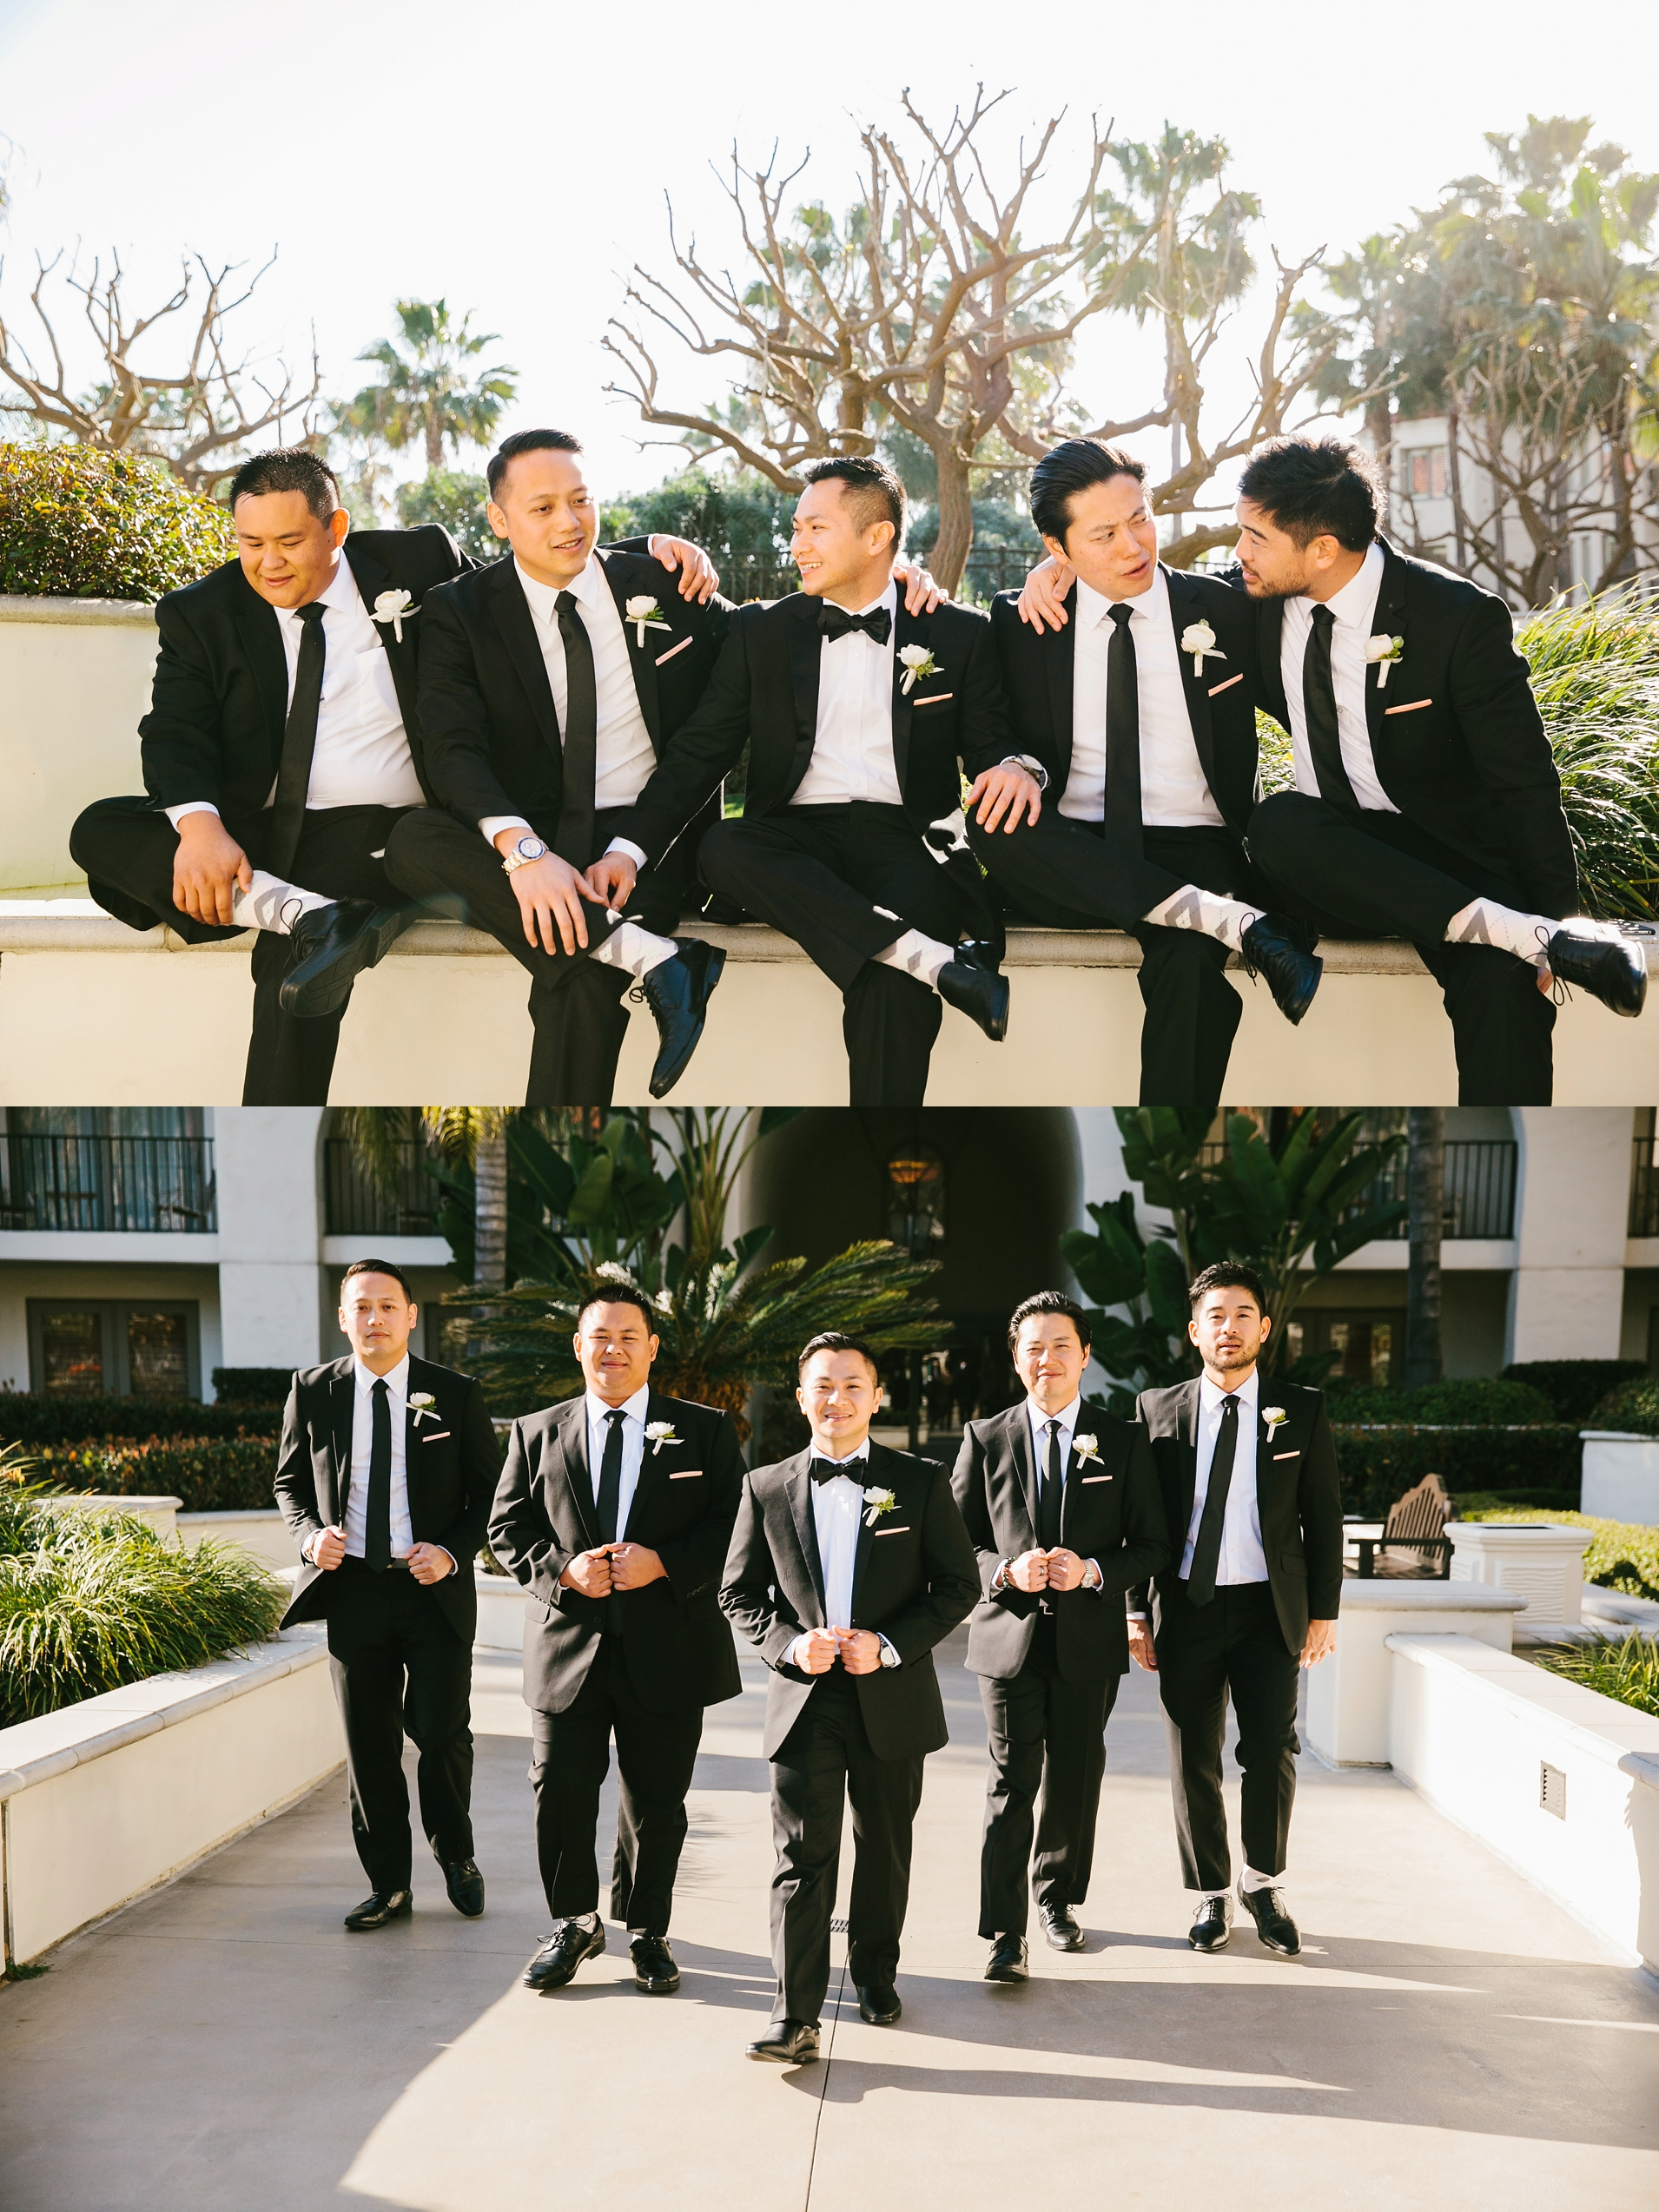 Groom and Groomsmen Bridal Party Photos